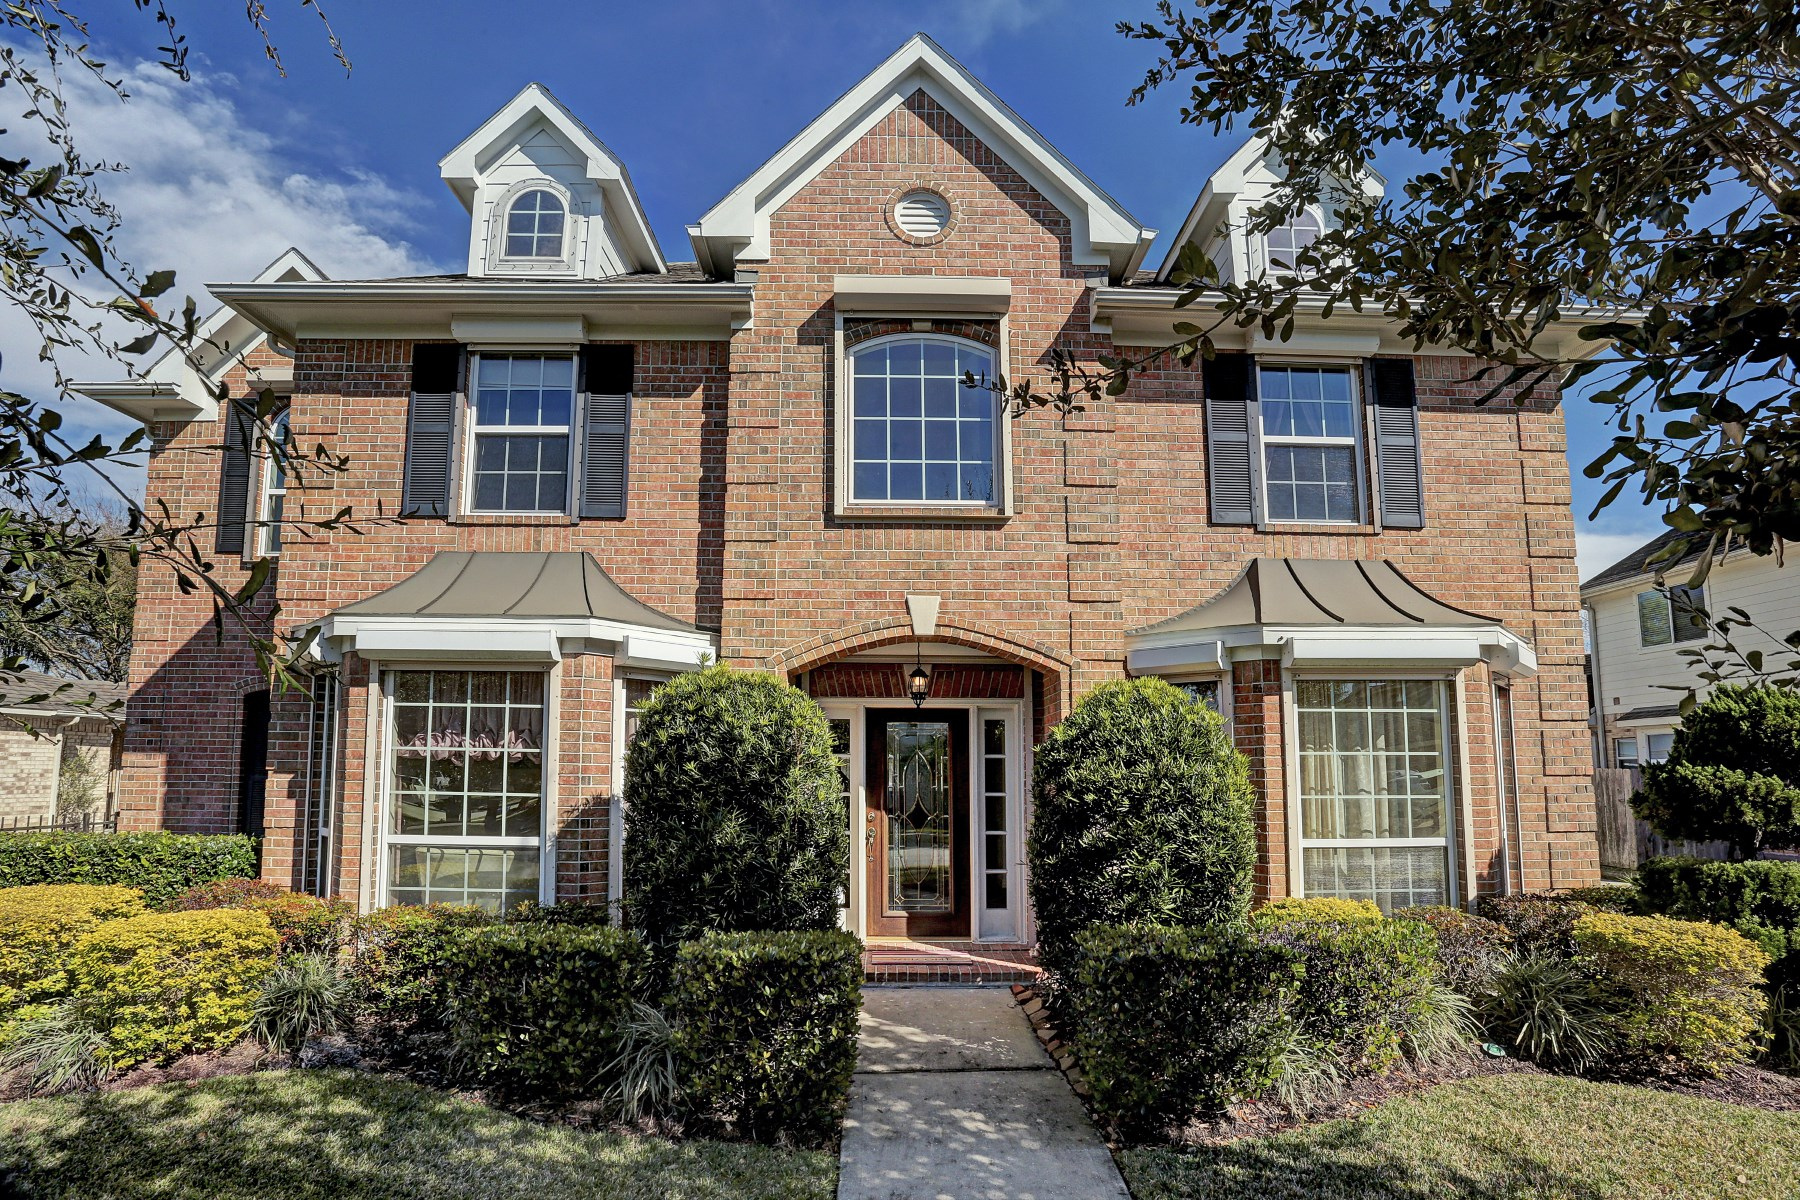 Casa unifamiliar en venta en/de 119 Sandpiper Lane, League City, Texas ,77573  , EUA